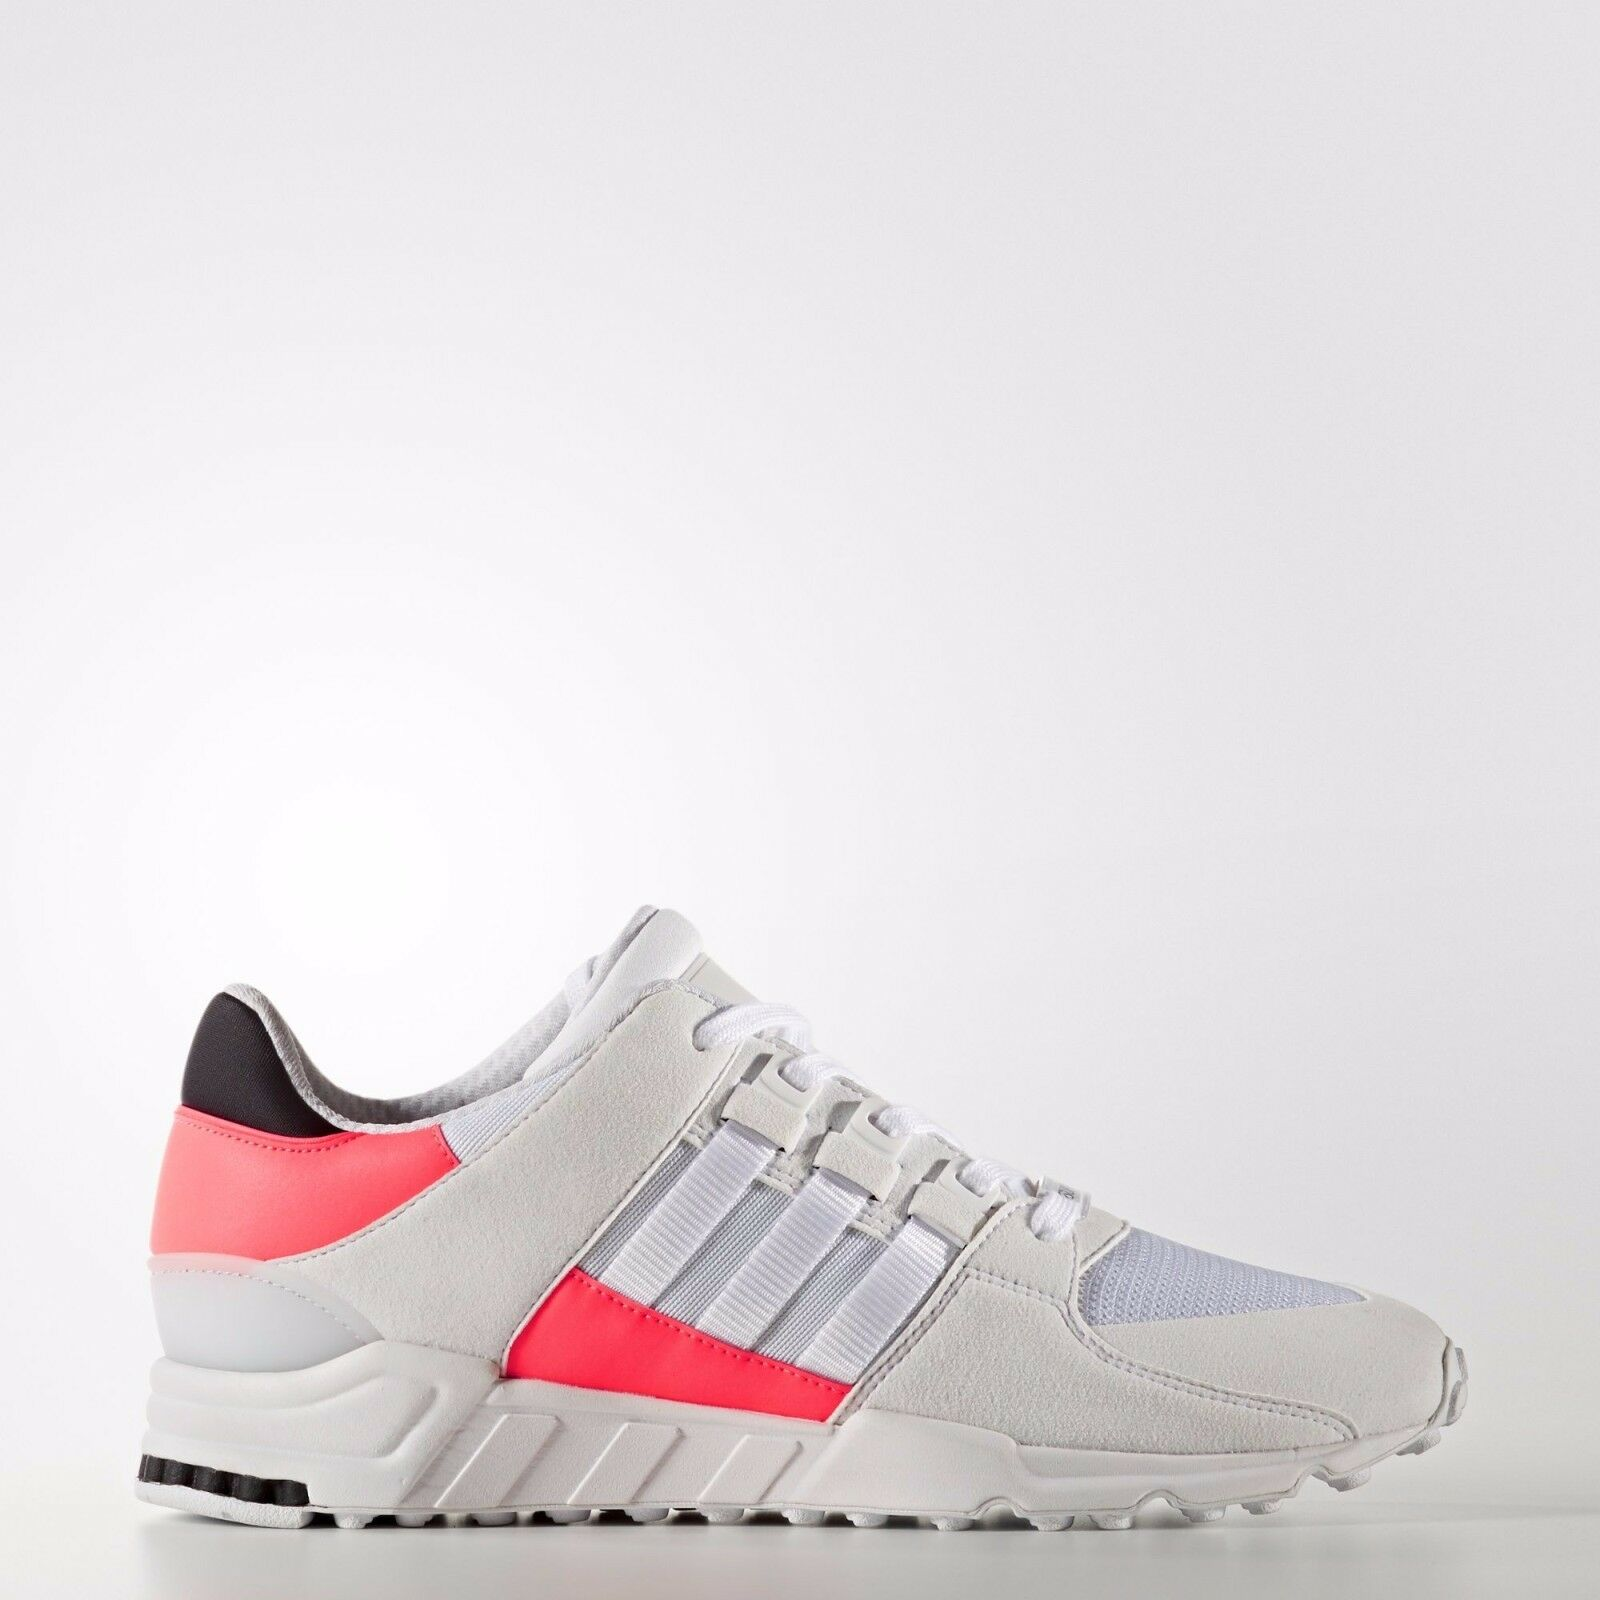 ADIDAS ORIGINALS EQT RF EQUIPMENT RUNNING SUPPORT Herren  Herren SUPPORT Schuhe SIZE US 11.5 BA7716 7f1d34